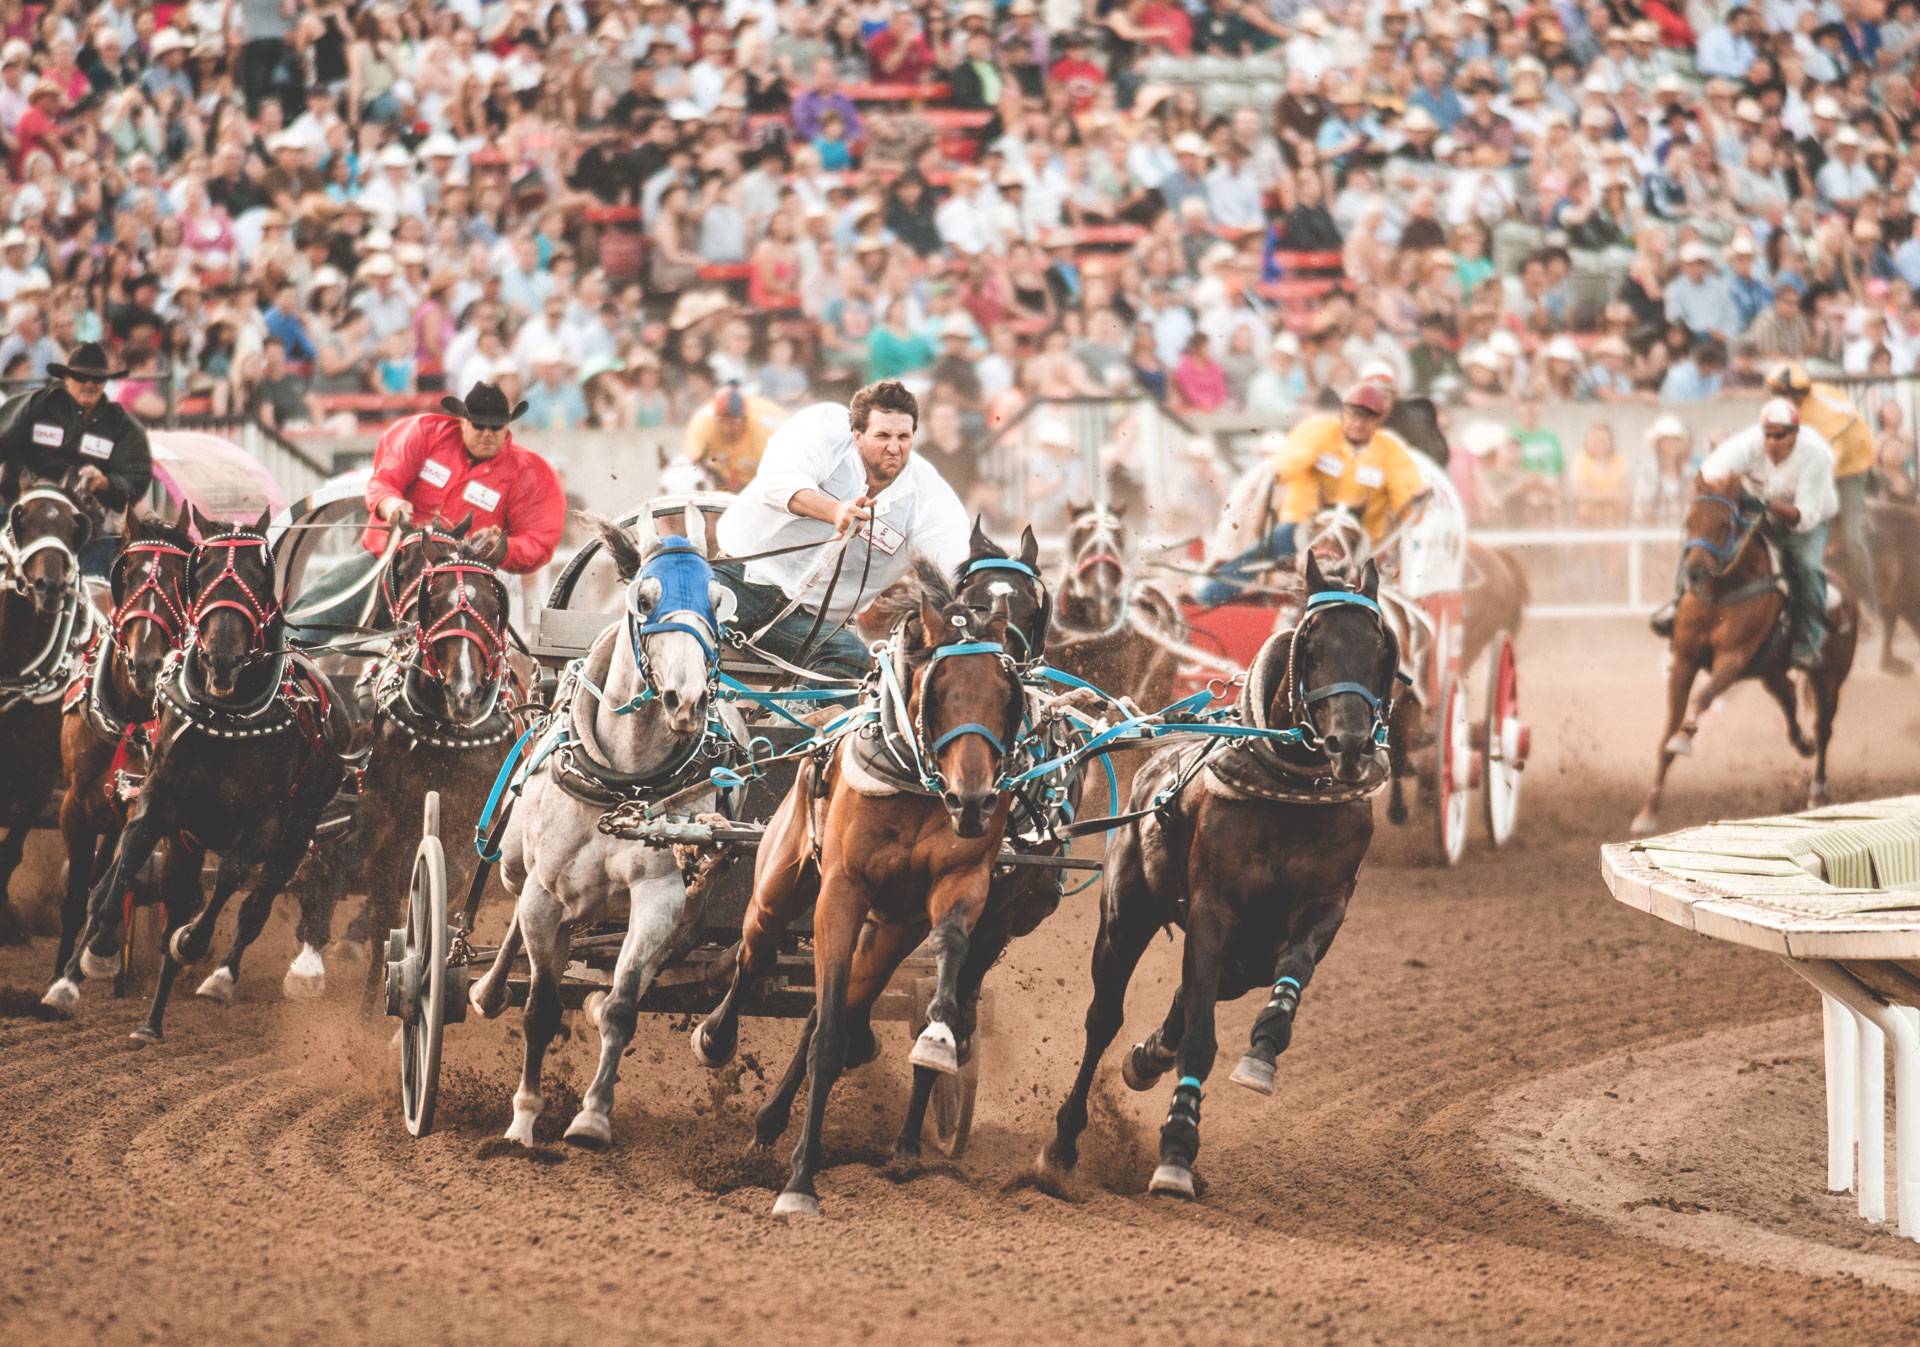 The chuckwagon races are a must-see experience at the Calgary Stampede.